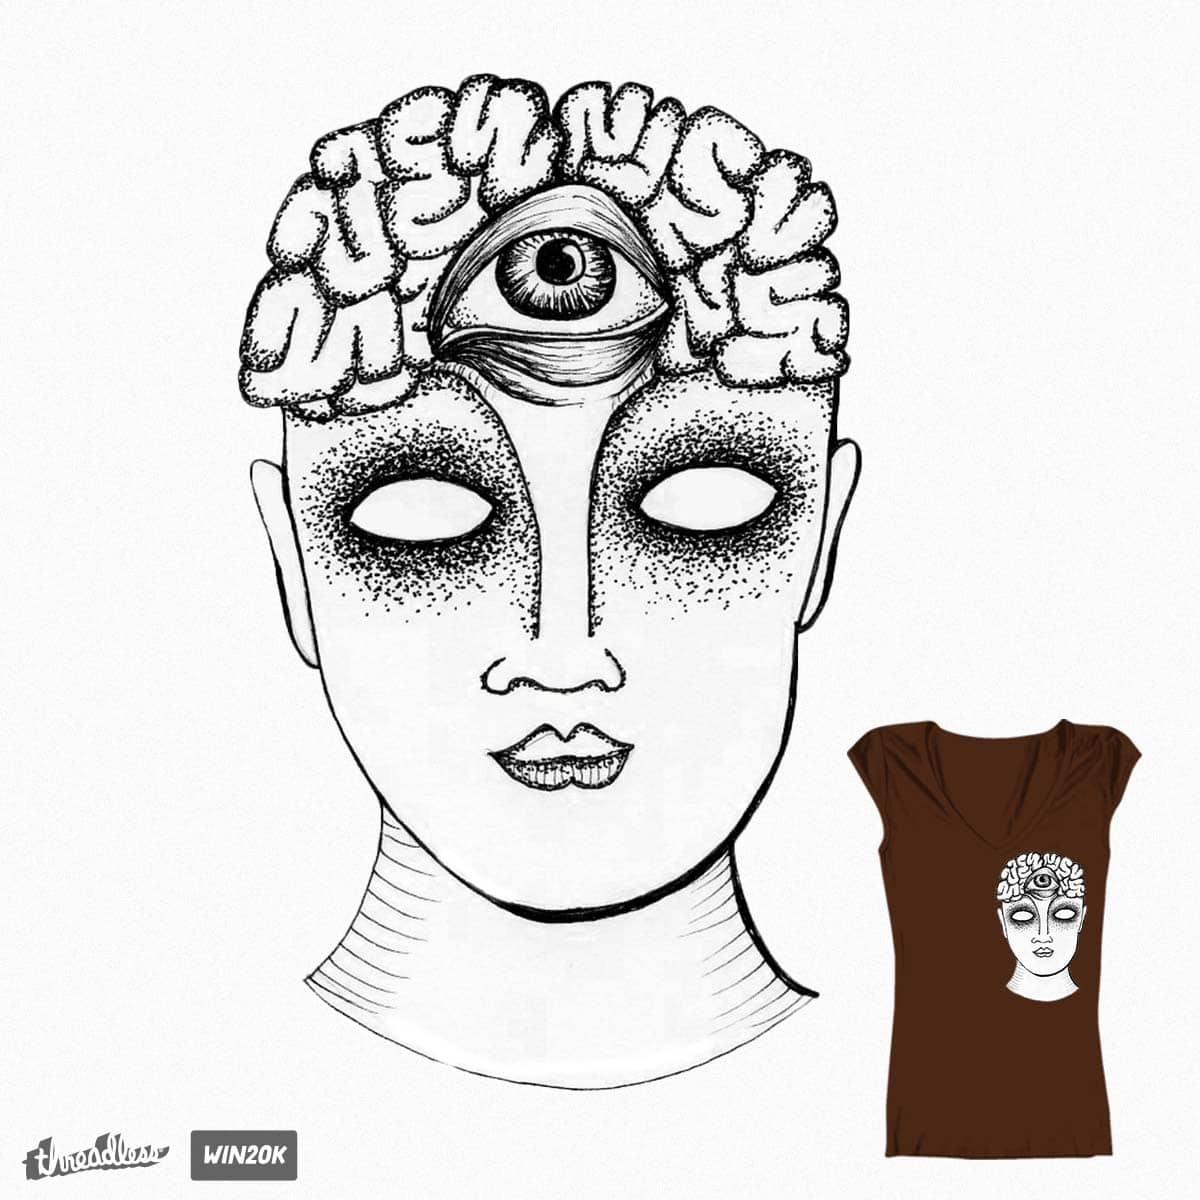 3rd iMind by DesignByBreezy on Threadless